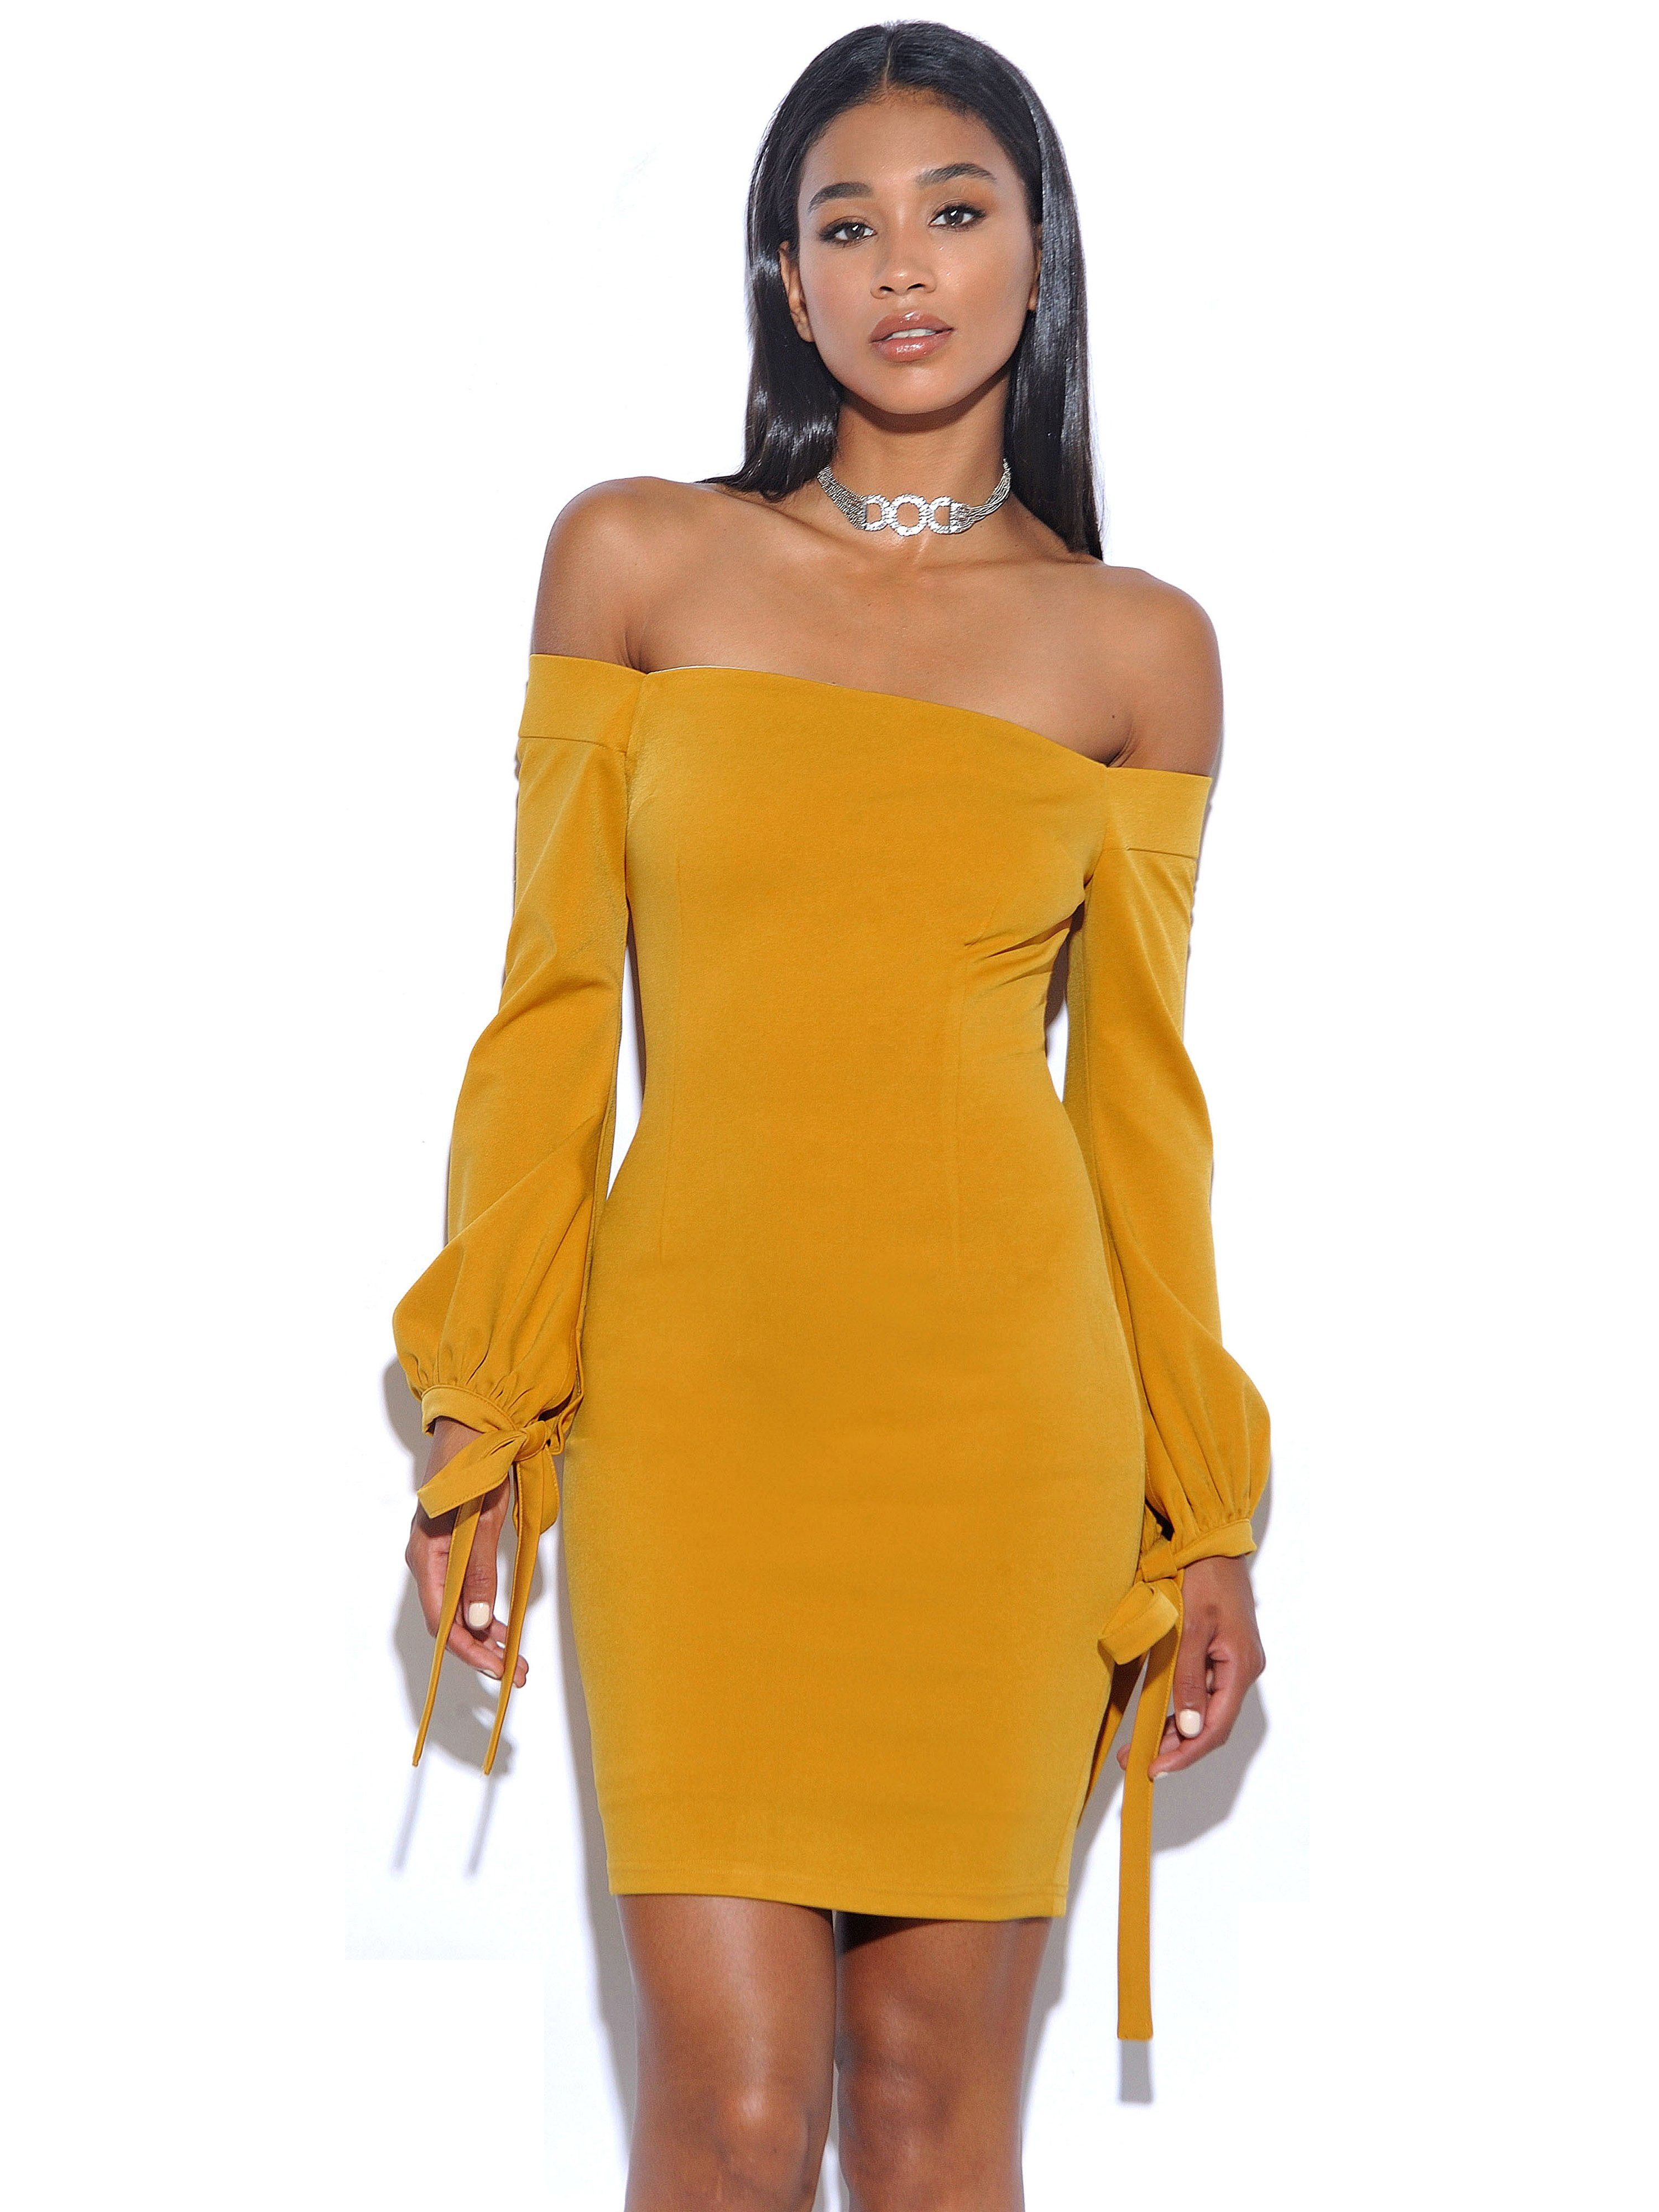 400a654b749d The Paloma bodycon dress features puffy tie sleeves leading up to a  gorgeous off the shoulder fully lined style to really stand out in the  crowd.